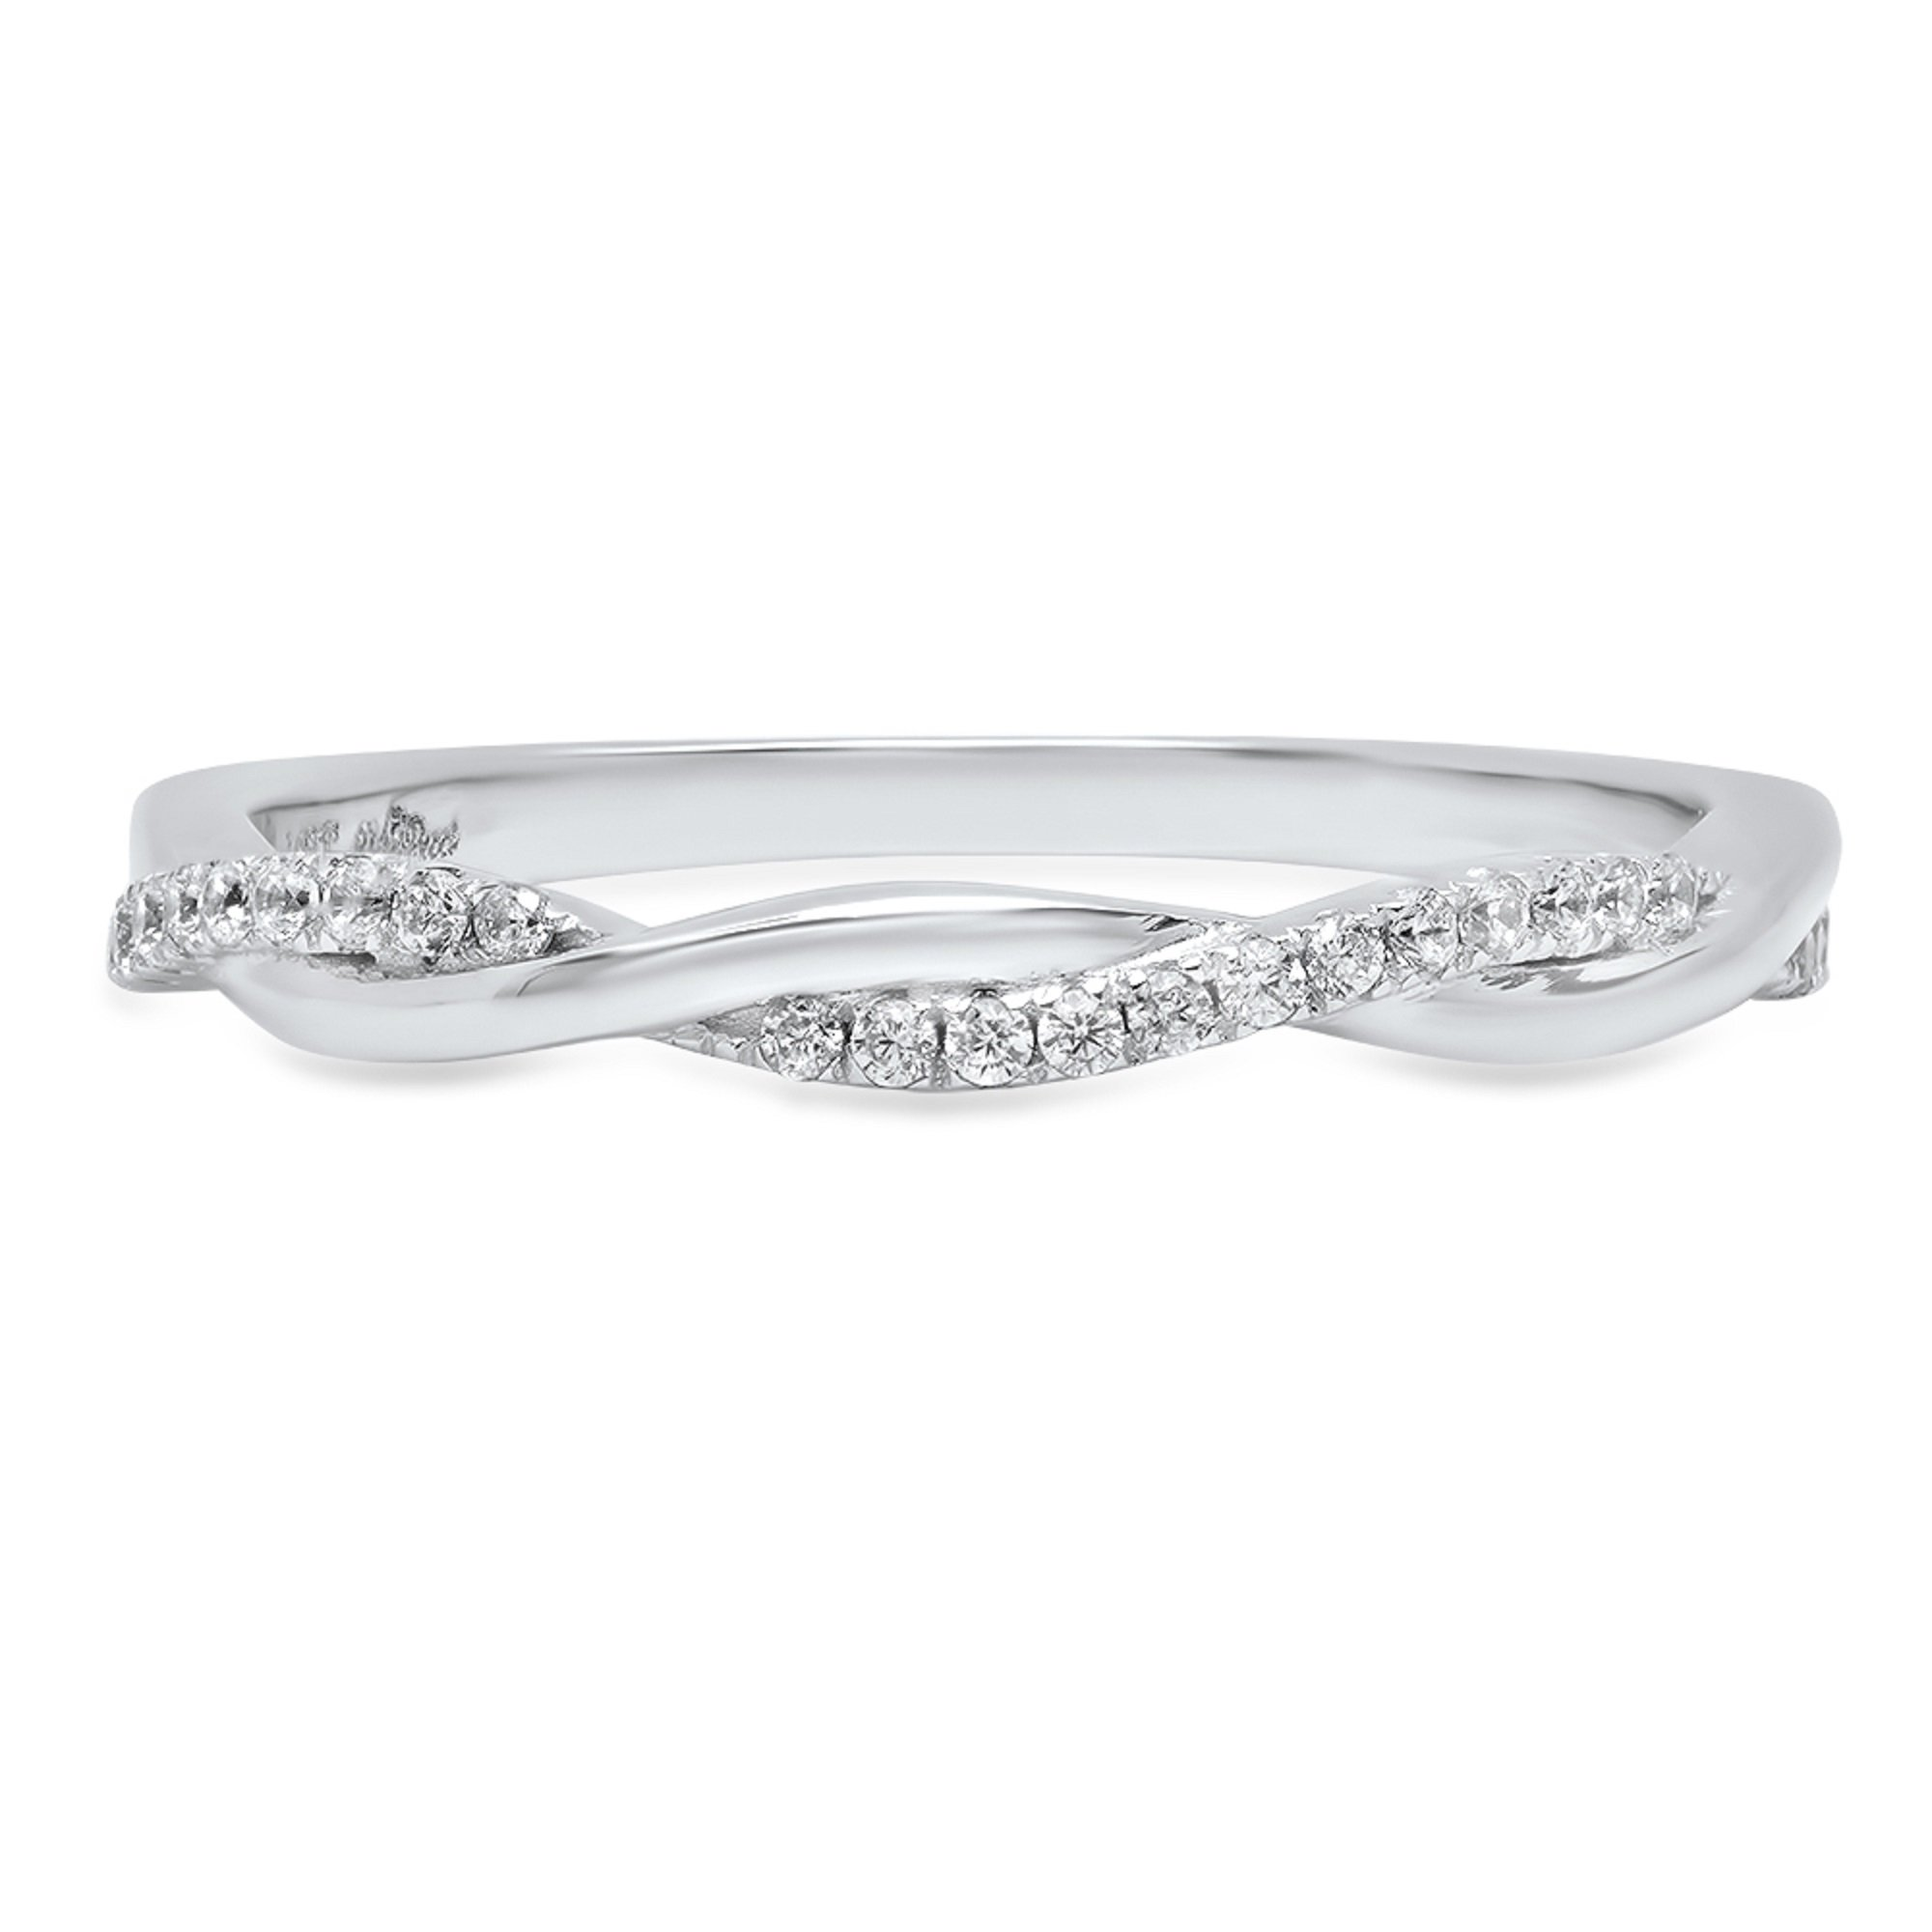 Clara Pucci 0.12ct Brilliant Round Cut Solitaire Stackable Bridal Wedding Promise Anniversary Band 14k Solid White Gold, 6 by Clara Pucci